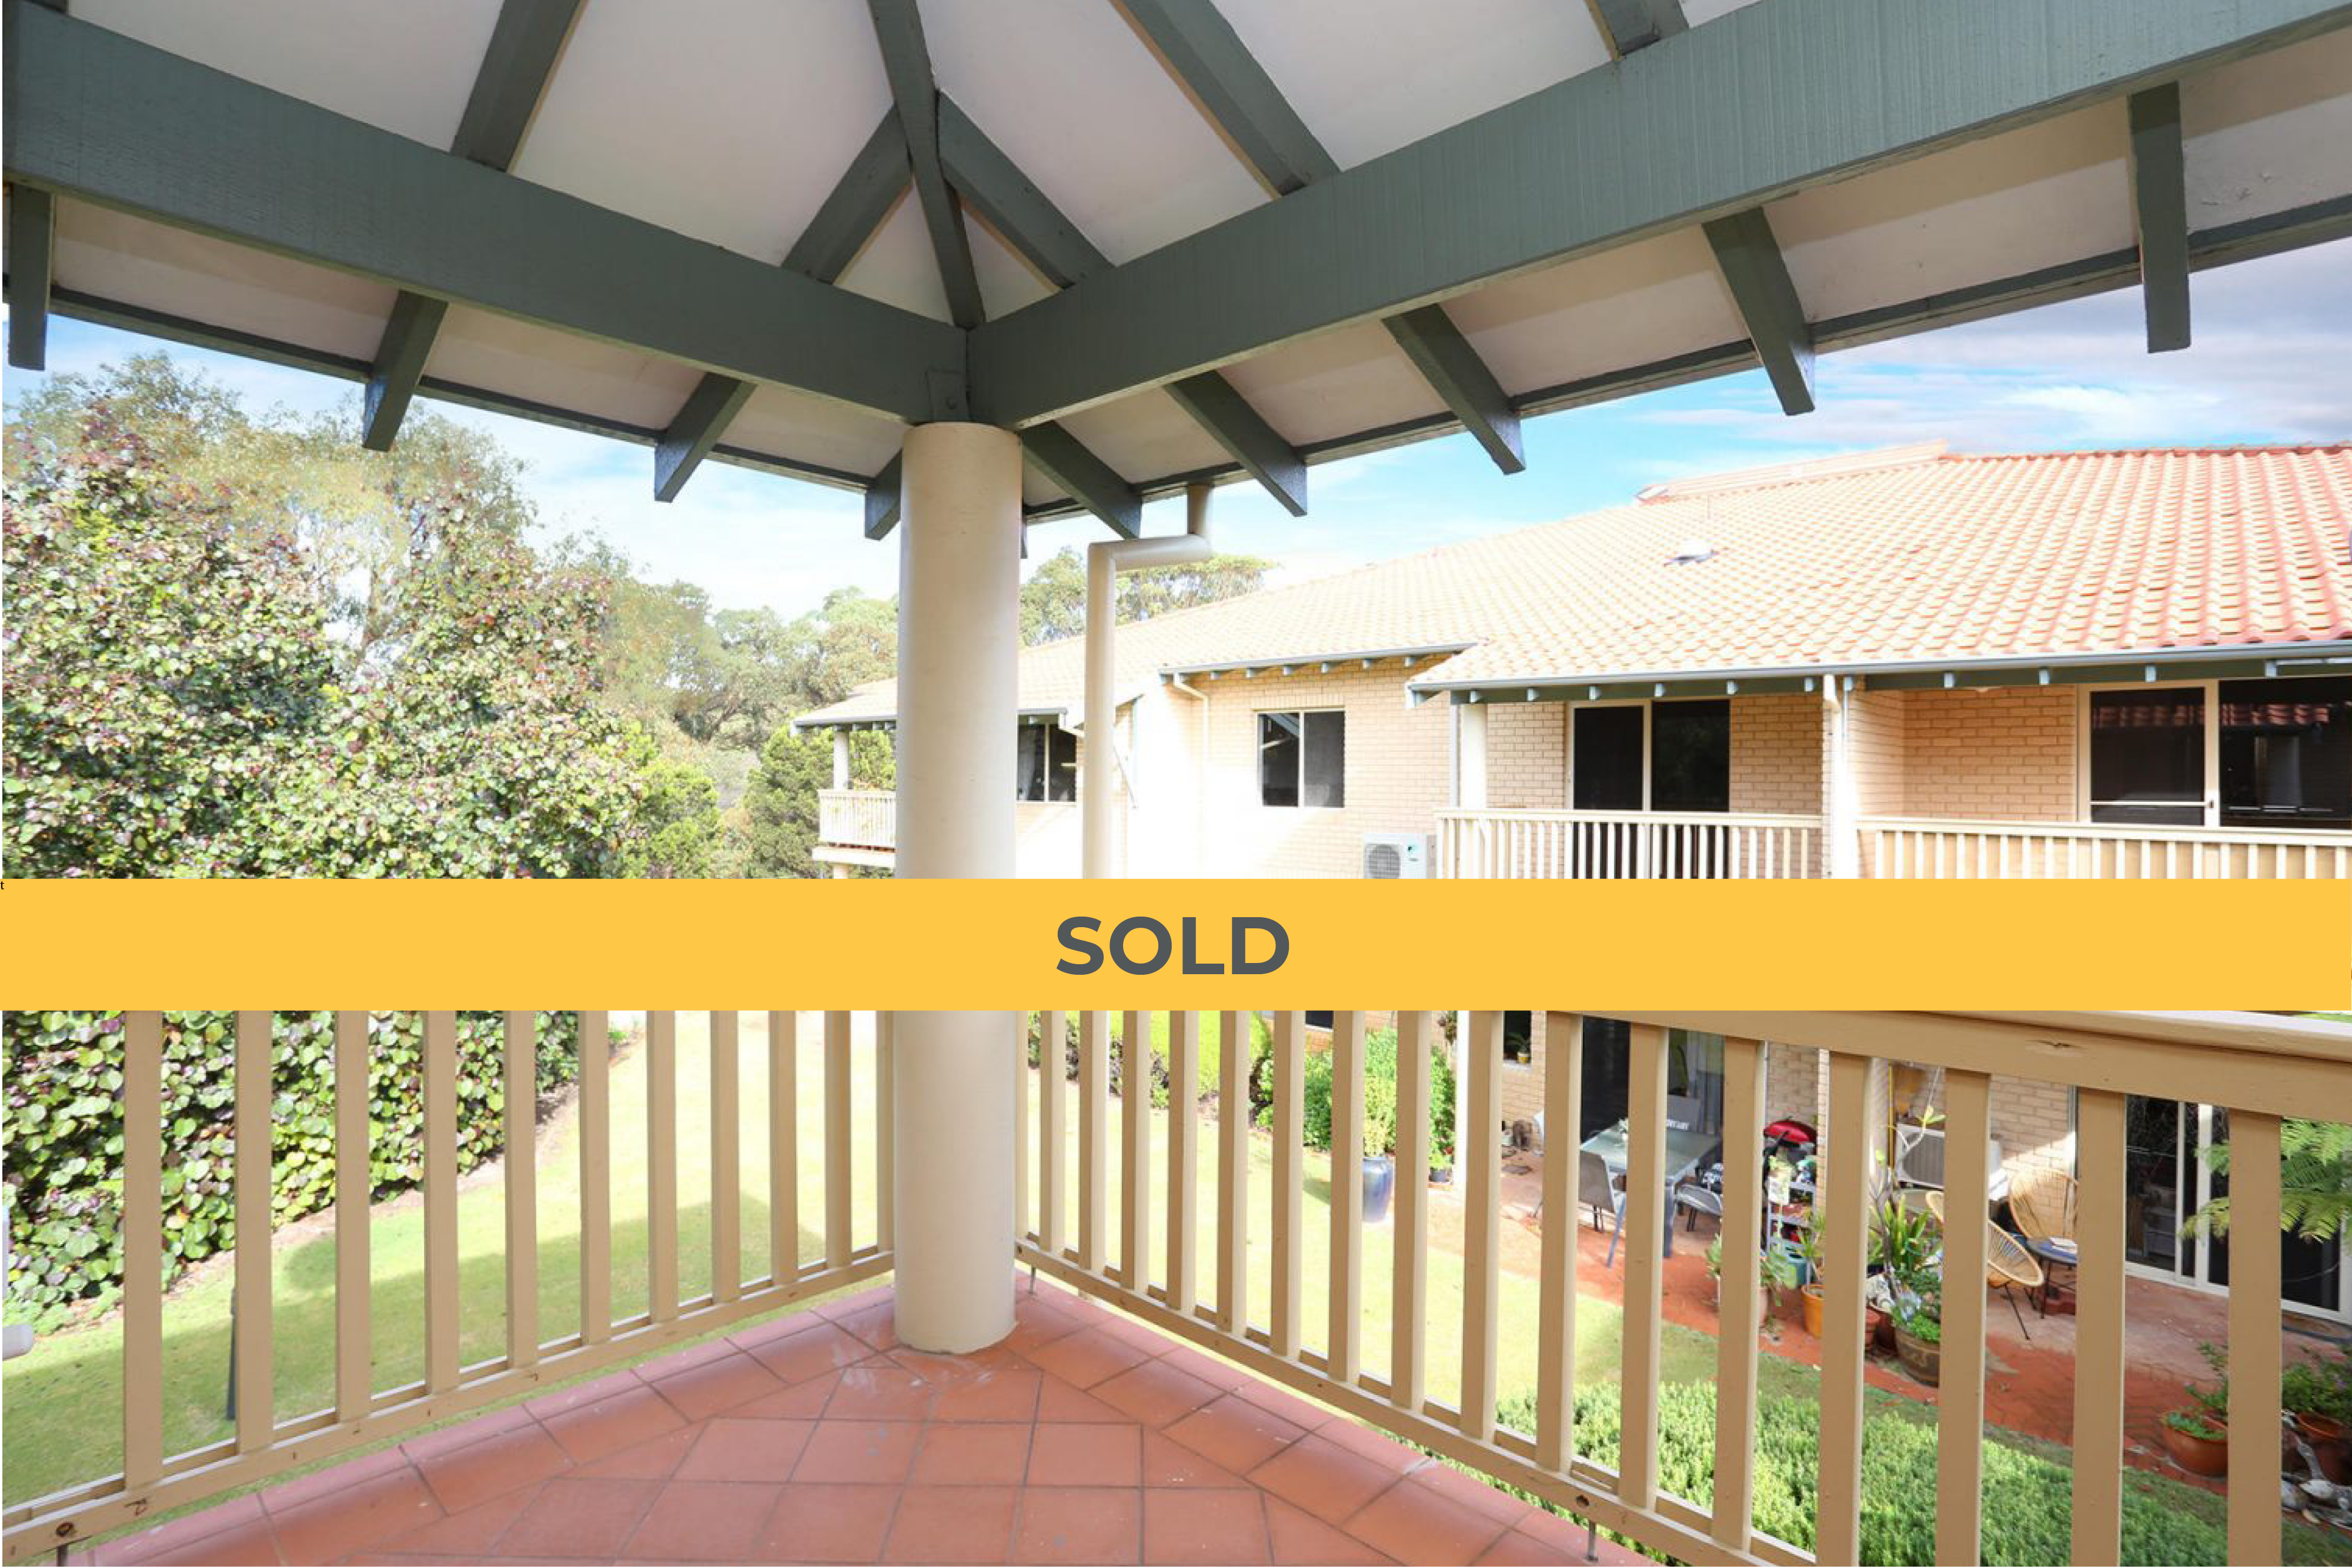 Apartment 245 Sold | Independent Living Facility Perth | Ocean Gardens